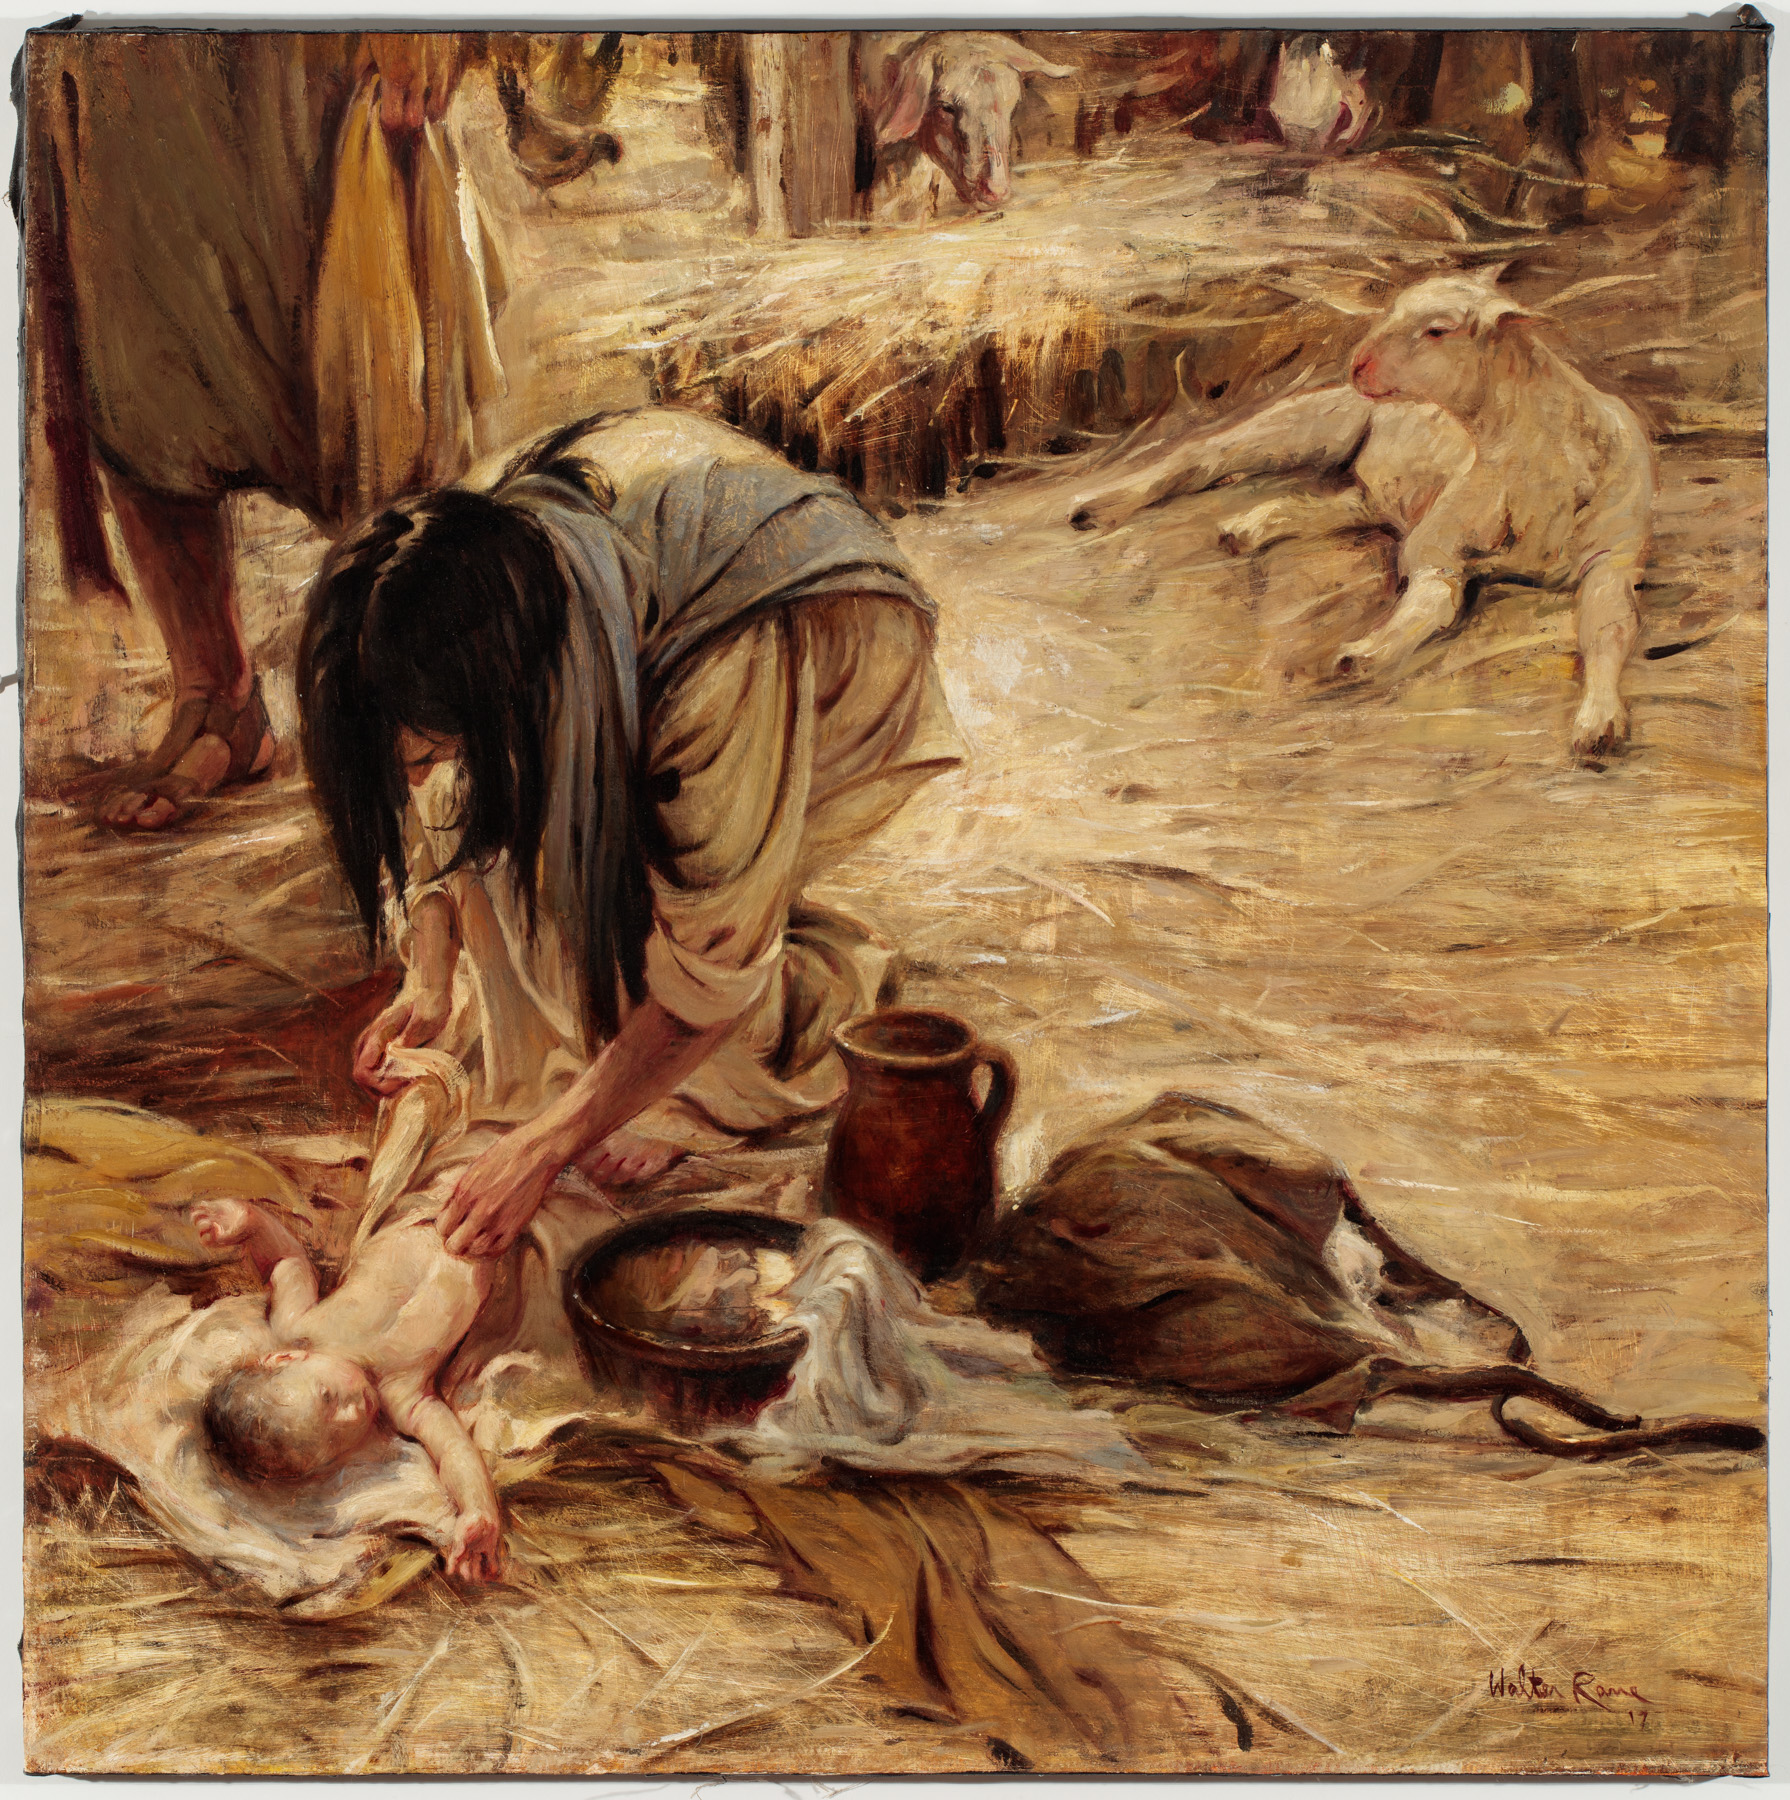 Unto Us  by Walter Rane. 35 x 35 in. Oil on Canvas.